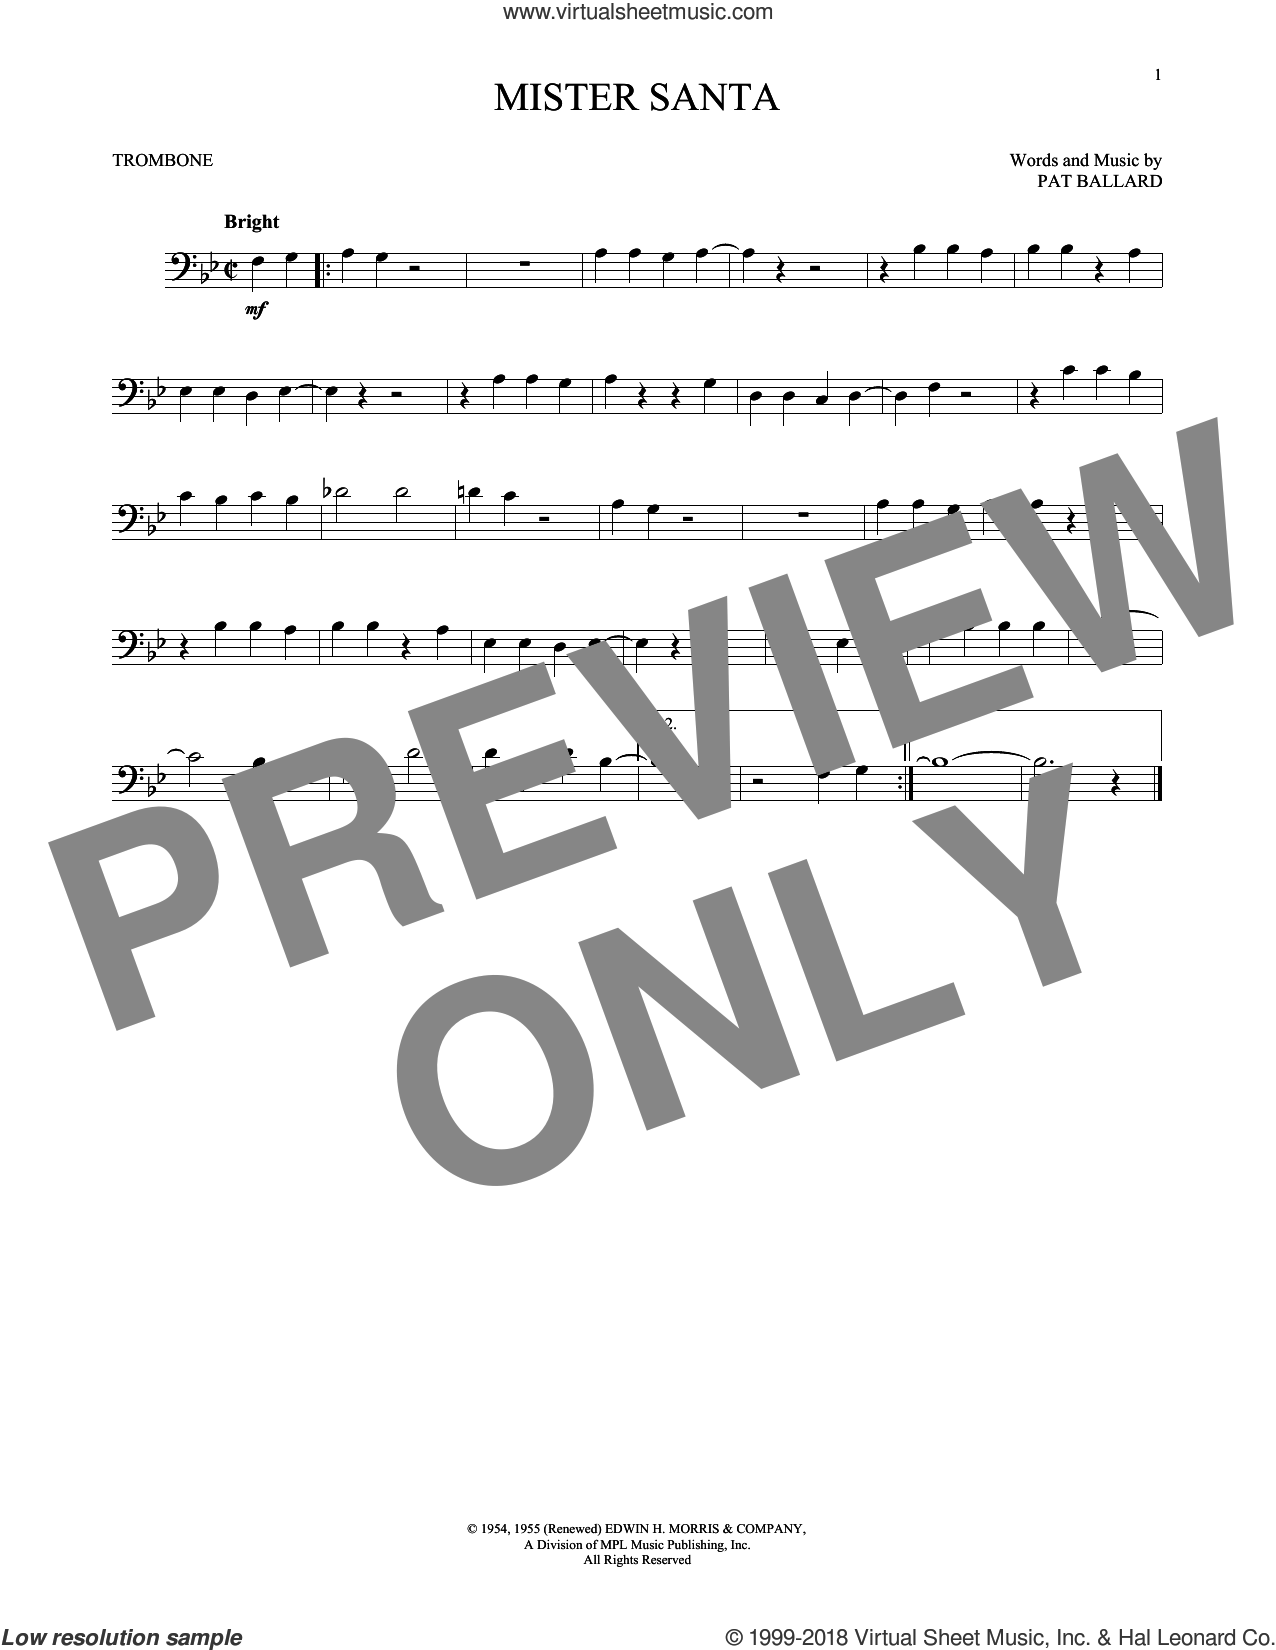 Mister Santa sheet music for trombone solo by Amy Grant and Pat Ballard, intermediate skill level